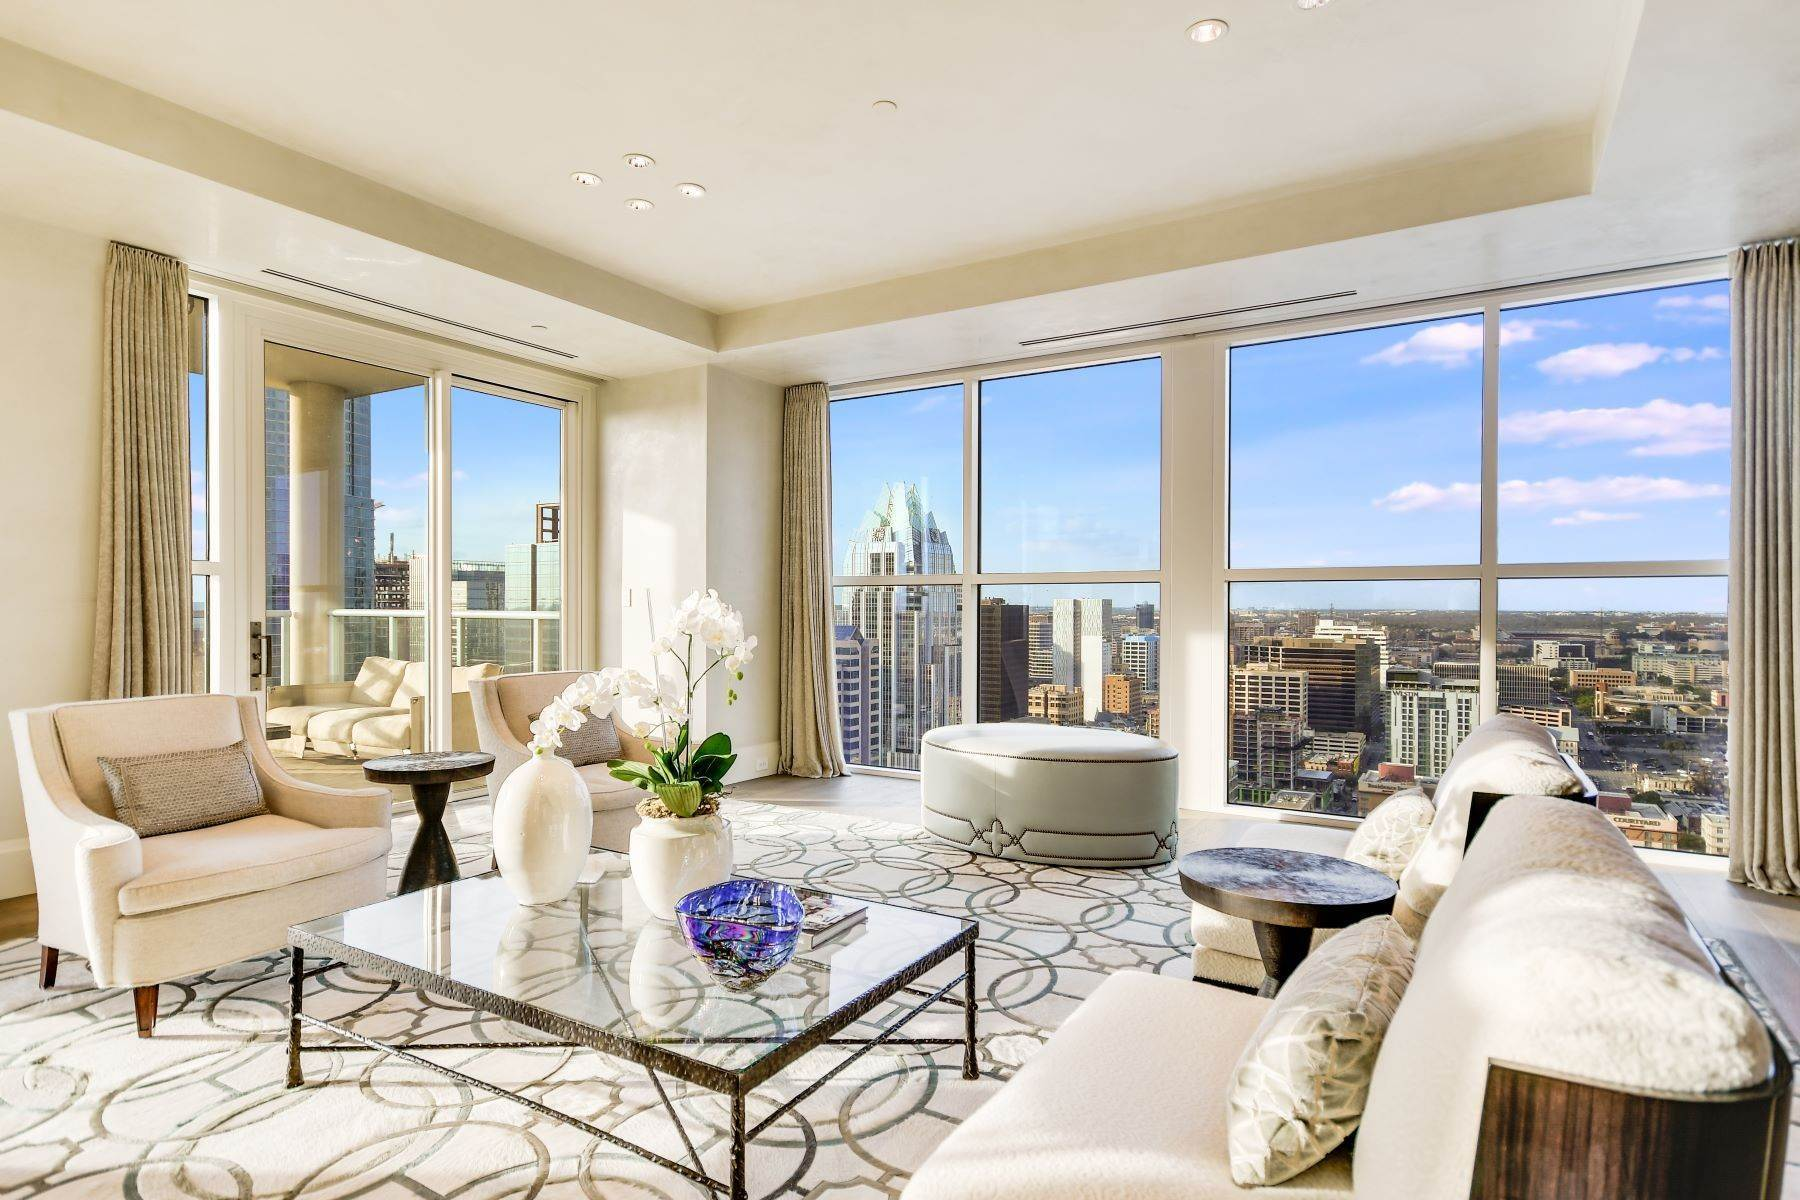 Condominiums for Sale at The Four Seasons, 30th Floor Penthouse 98 San Jacinto Boulevard, 30th Floor Penthouse Austin, Texas 78701 United States